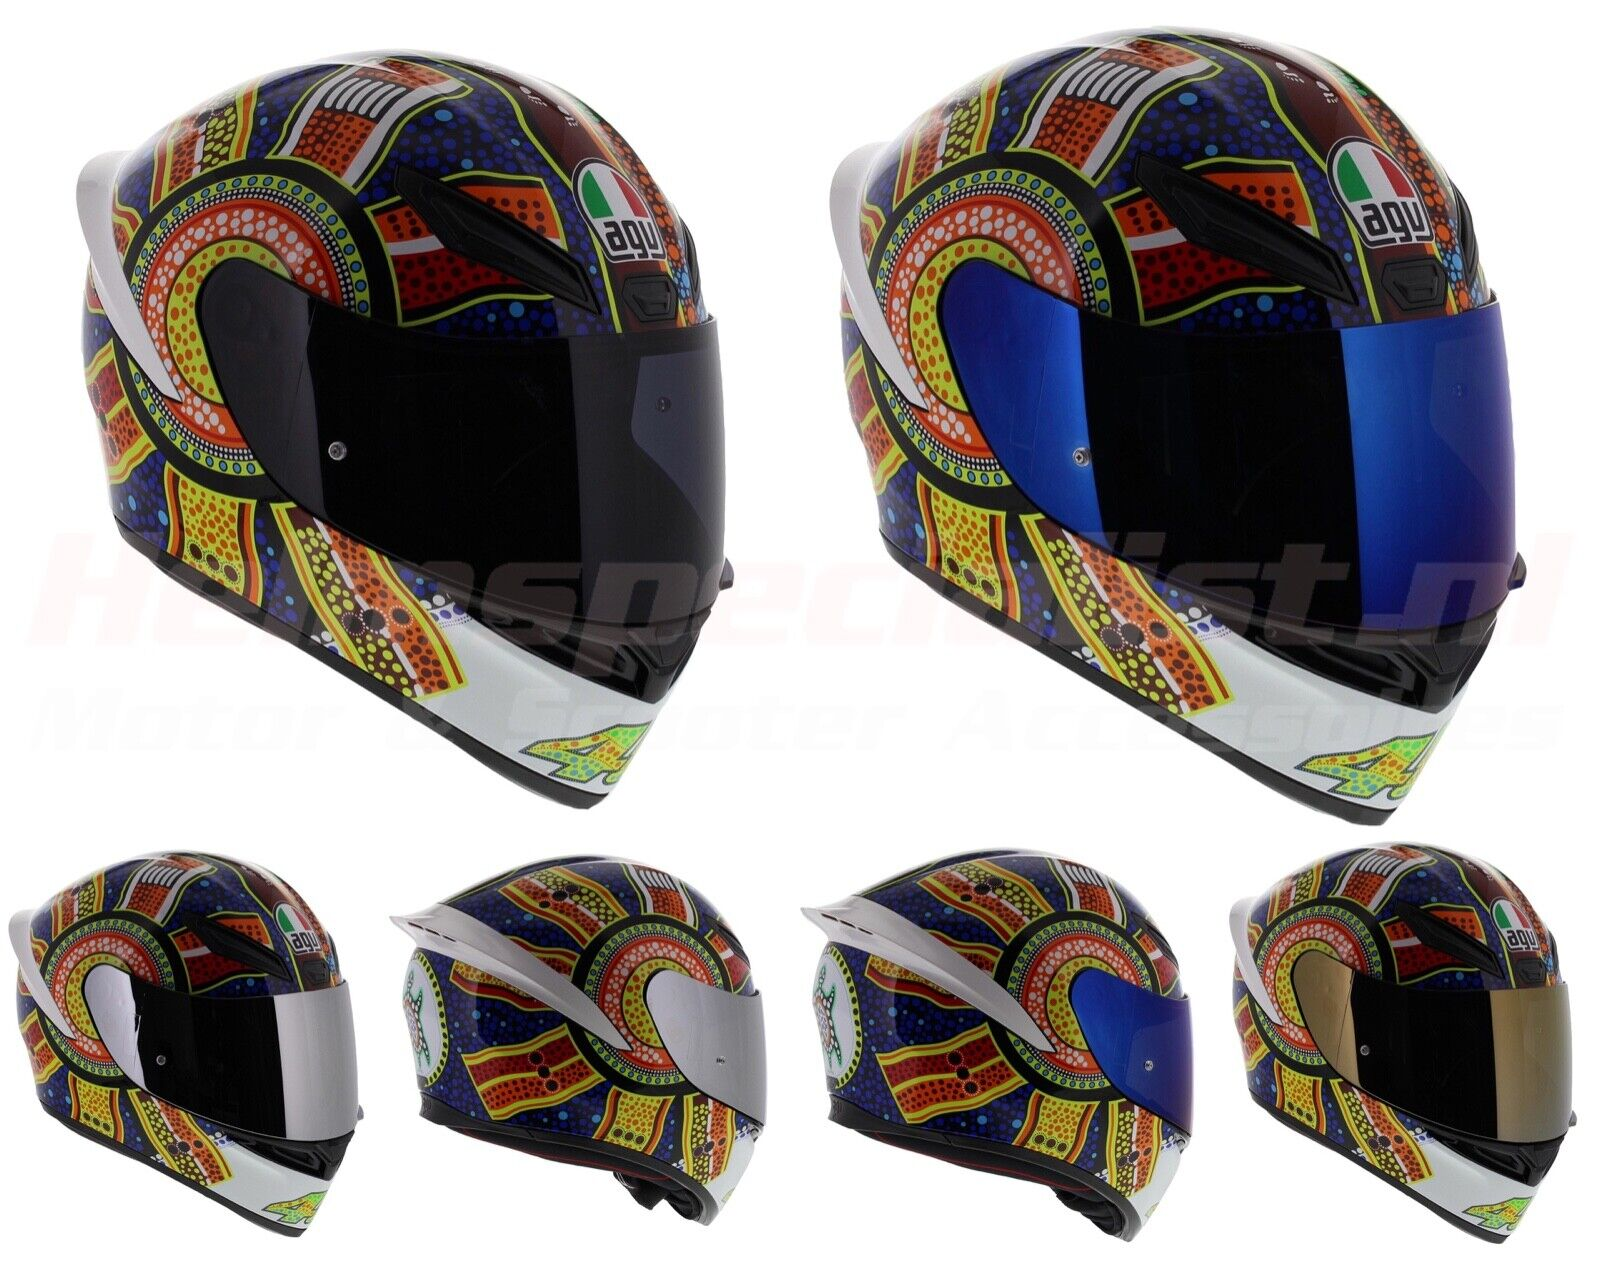 Agv K1 Dreamtime Valentino Rossi Motorcycle Helmet Fast N Free Shipping New Ebay